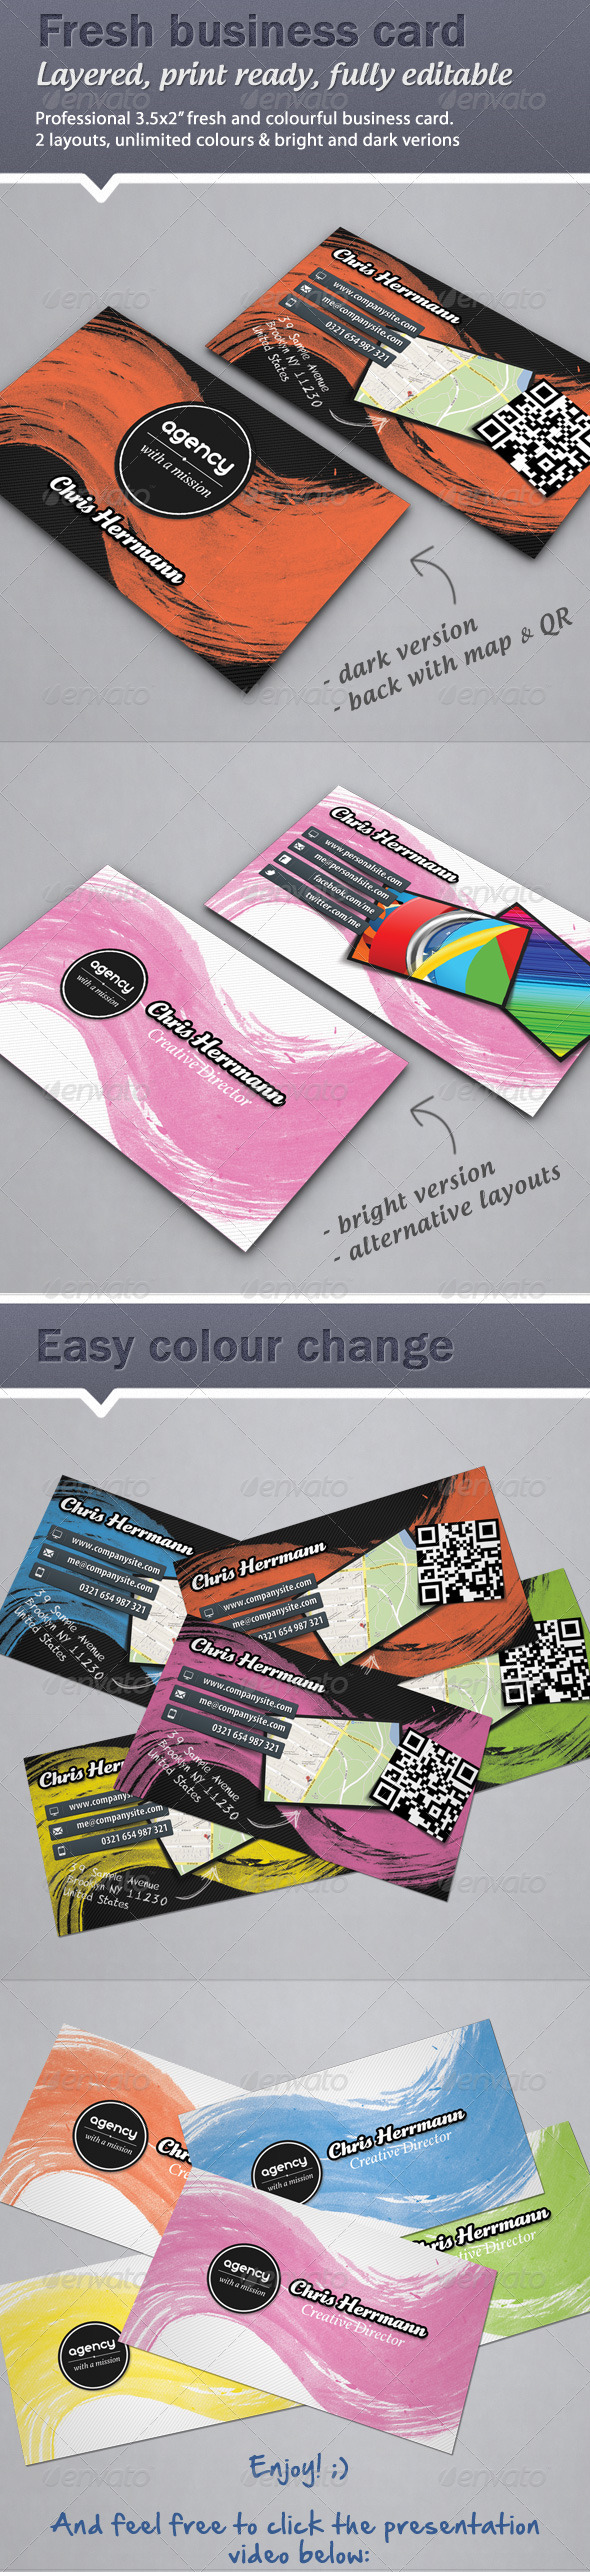 Colorful Fresh Business card